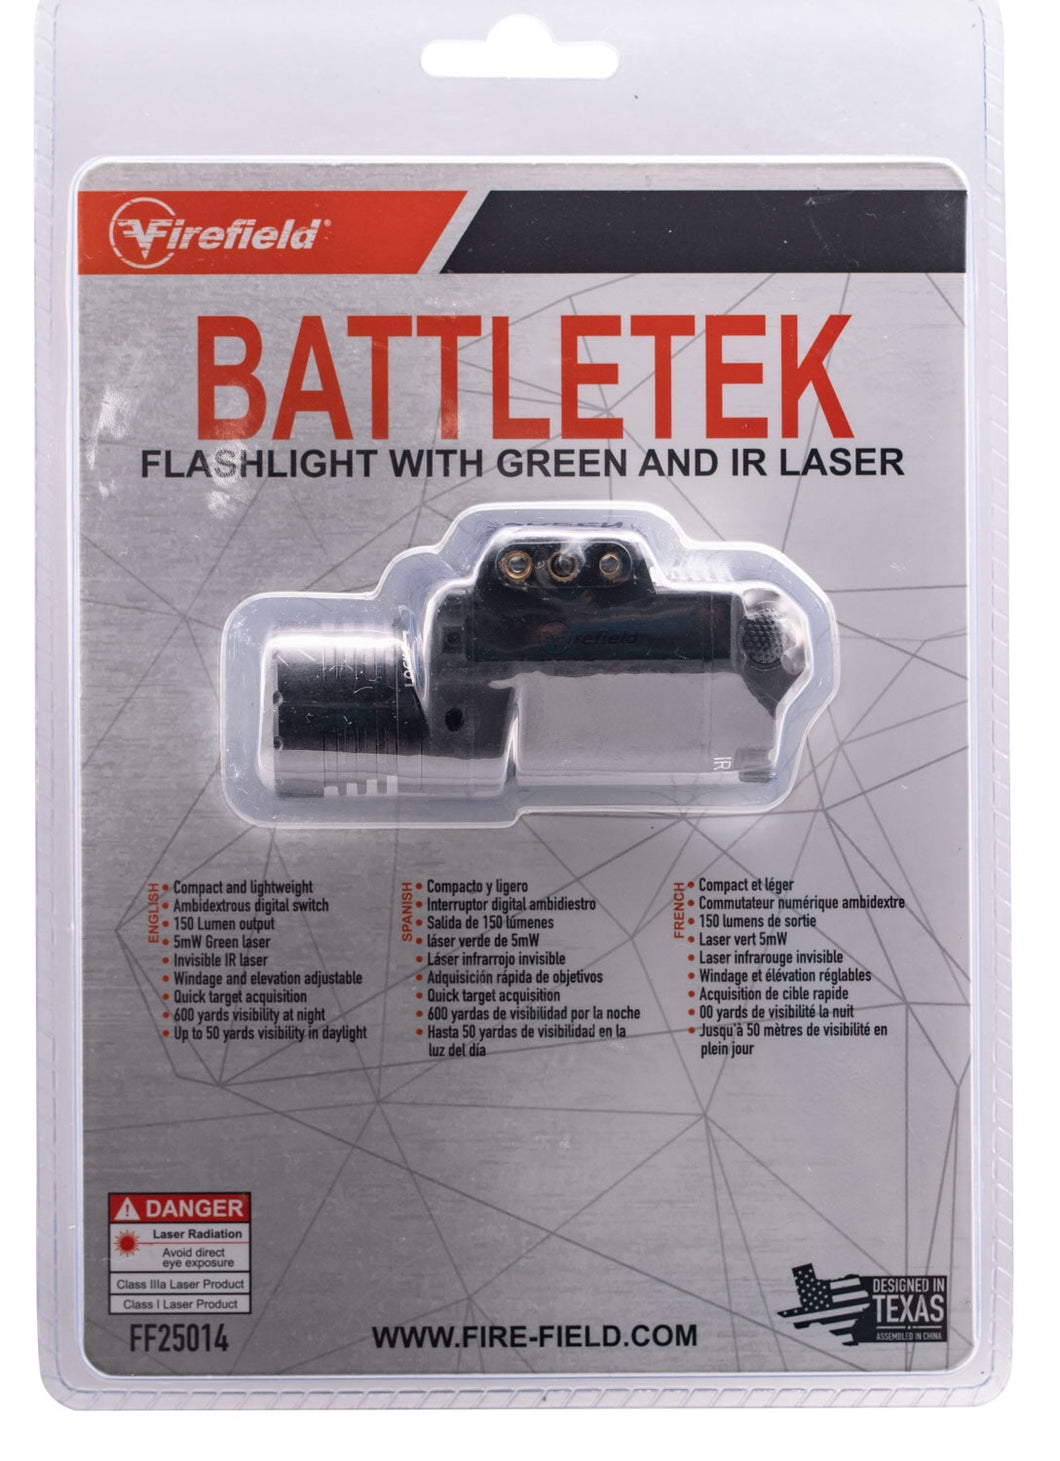 Firefield BattleTek Laser/Flashlight LED 150 Lumens